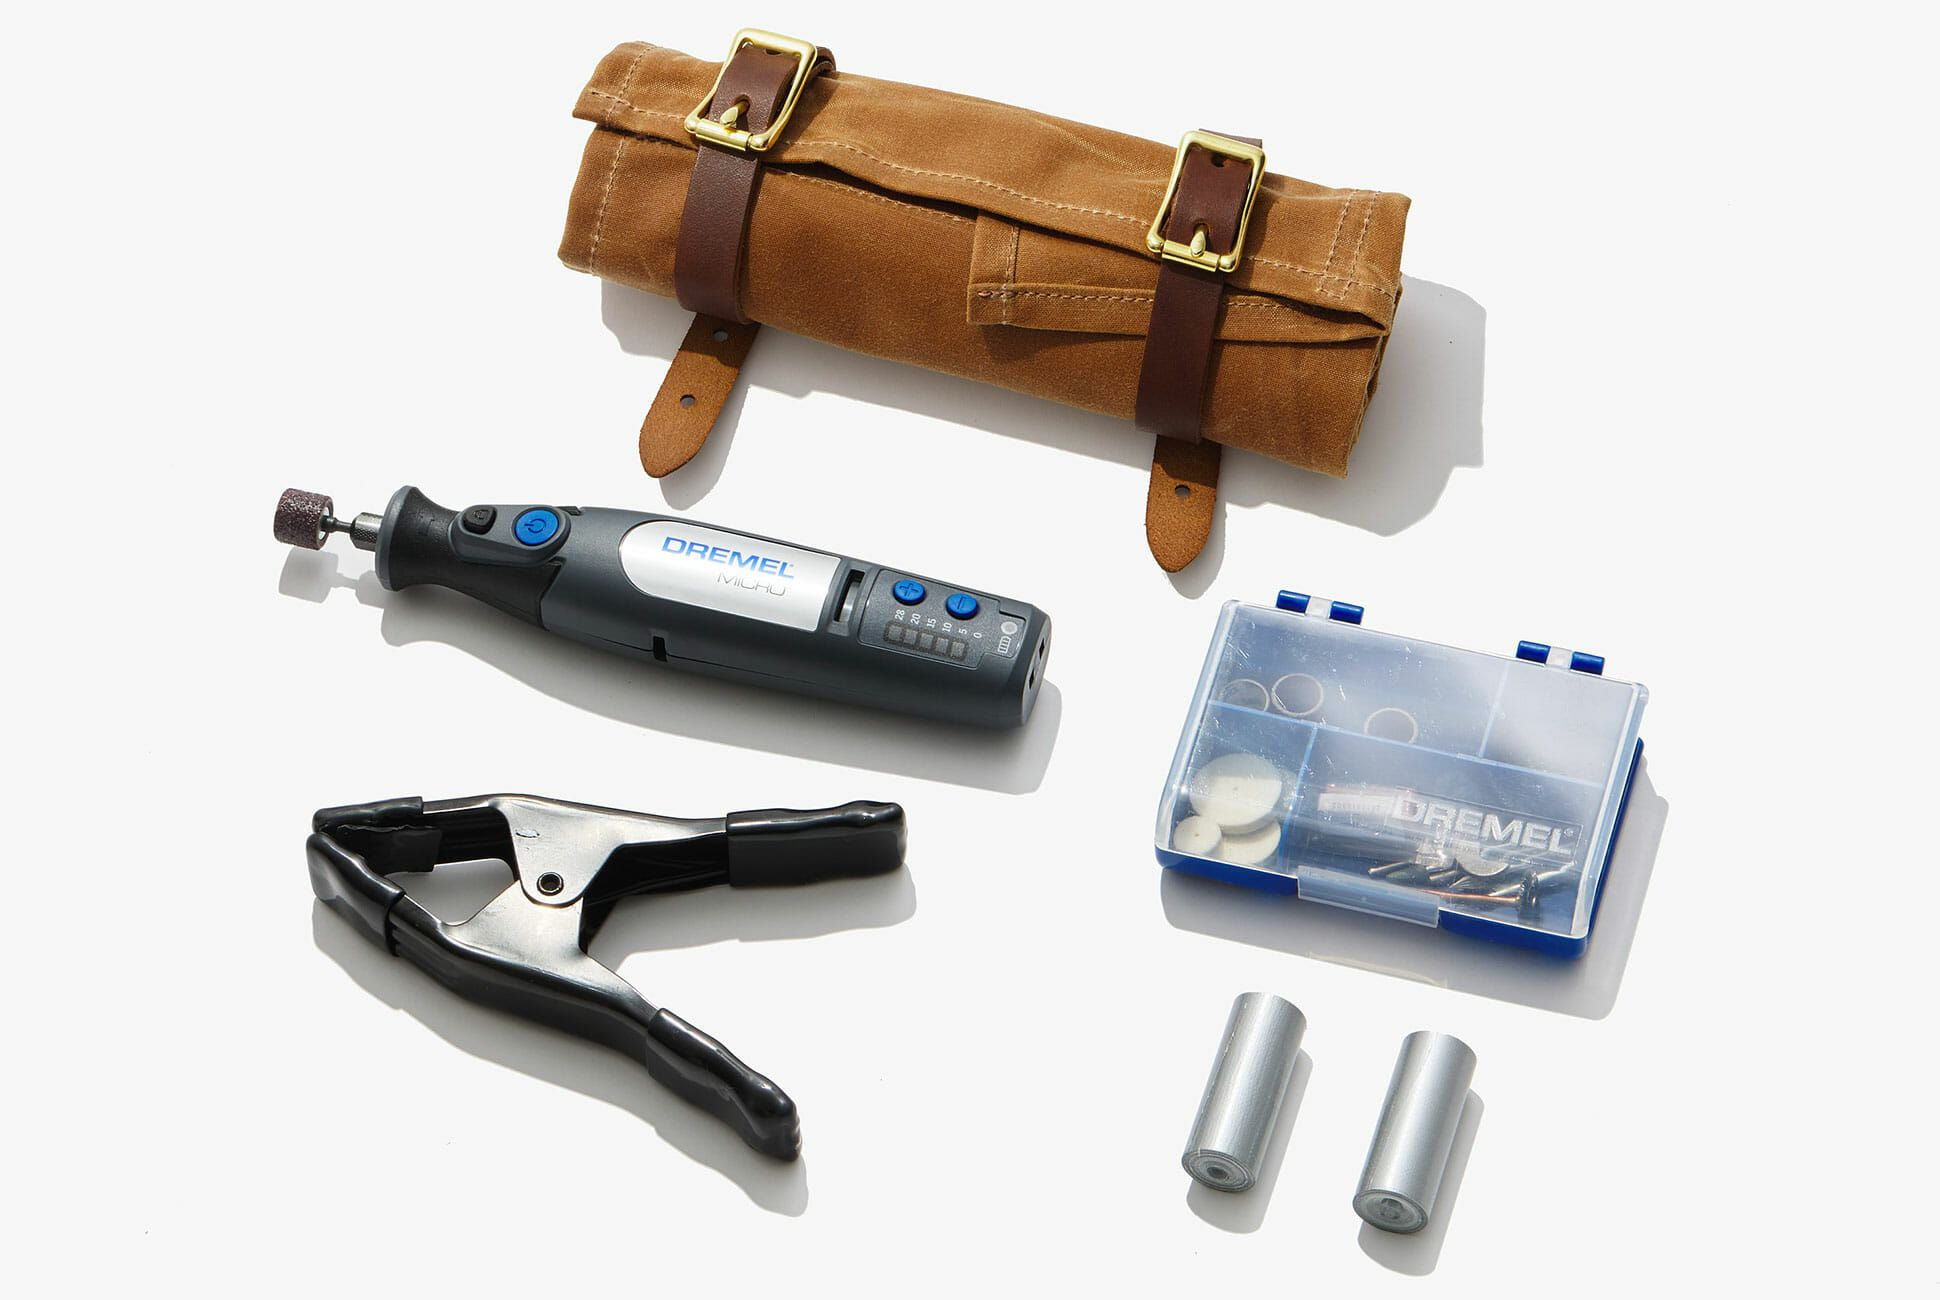 The-Ultimate-Apartment-Dwellers-Tool-Kit-Gear-Patrol-product-slide-2